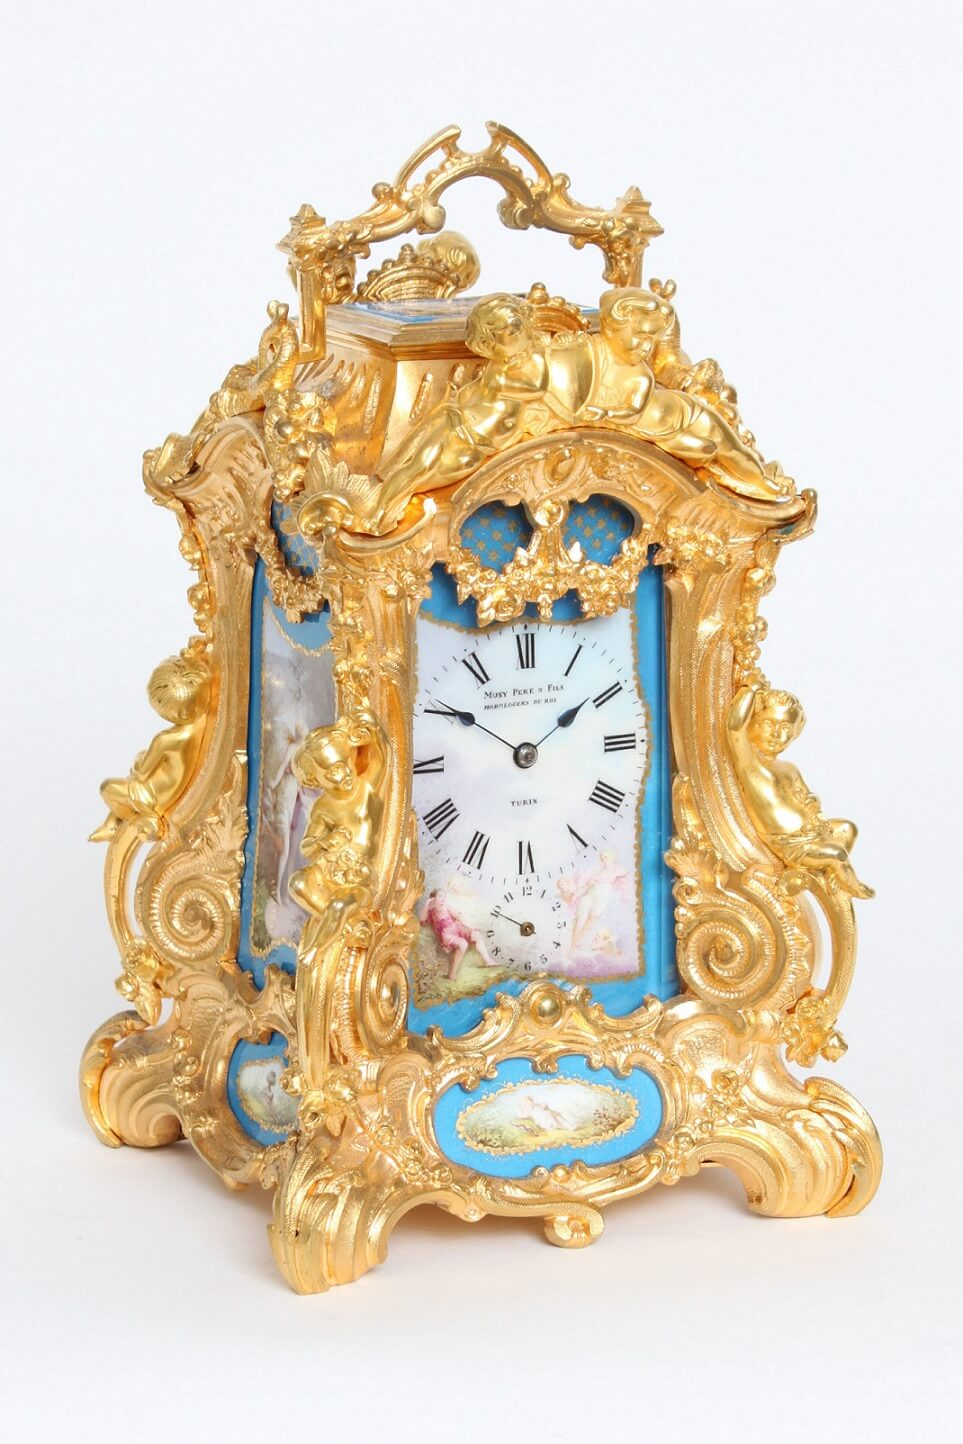 French-Drocourt-carriage clock-rococo case-antique clock-Sevres-porcelain-gilt bronze-Turin